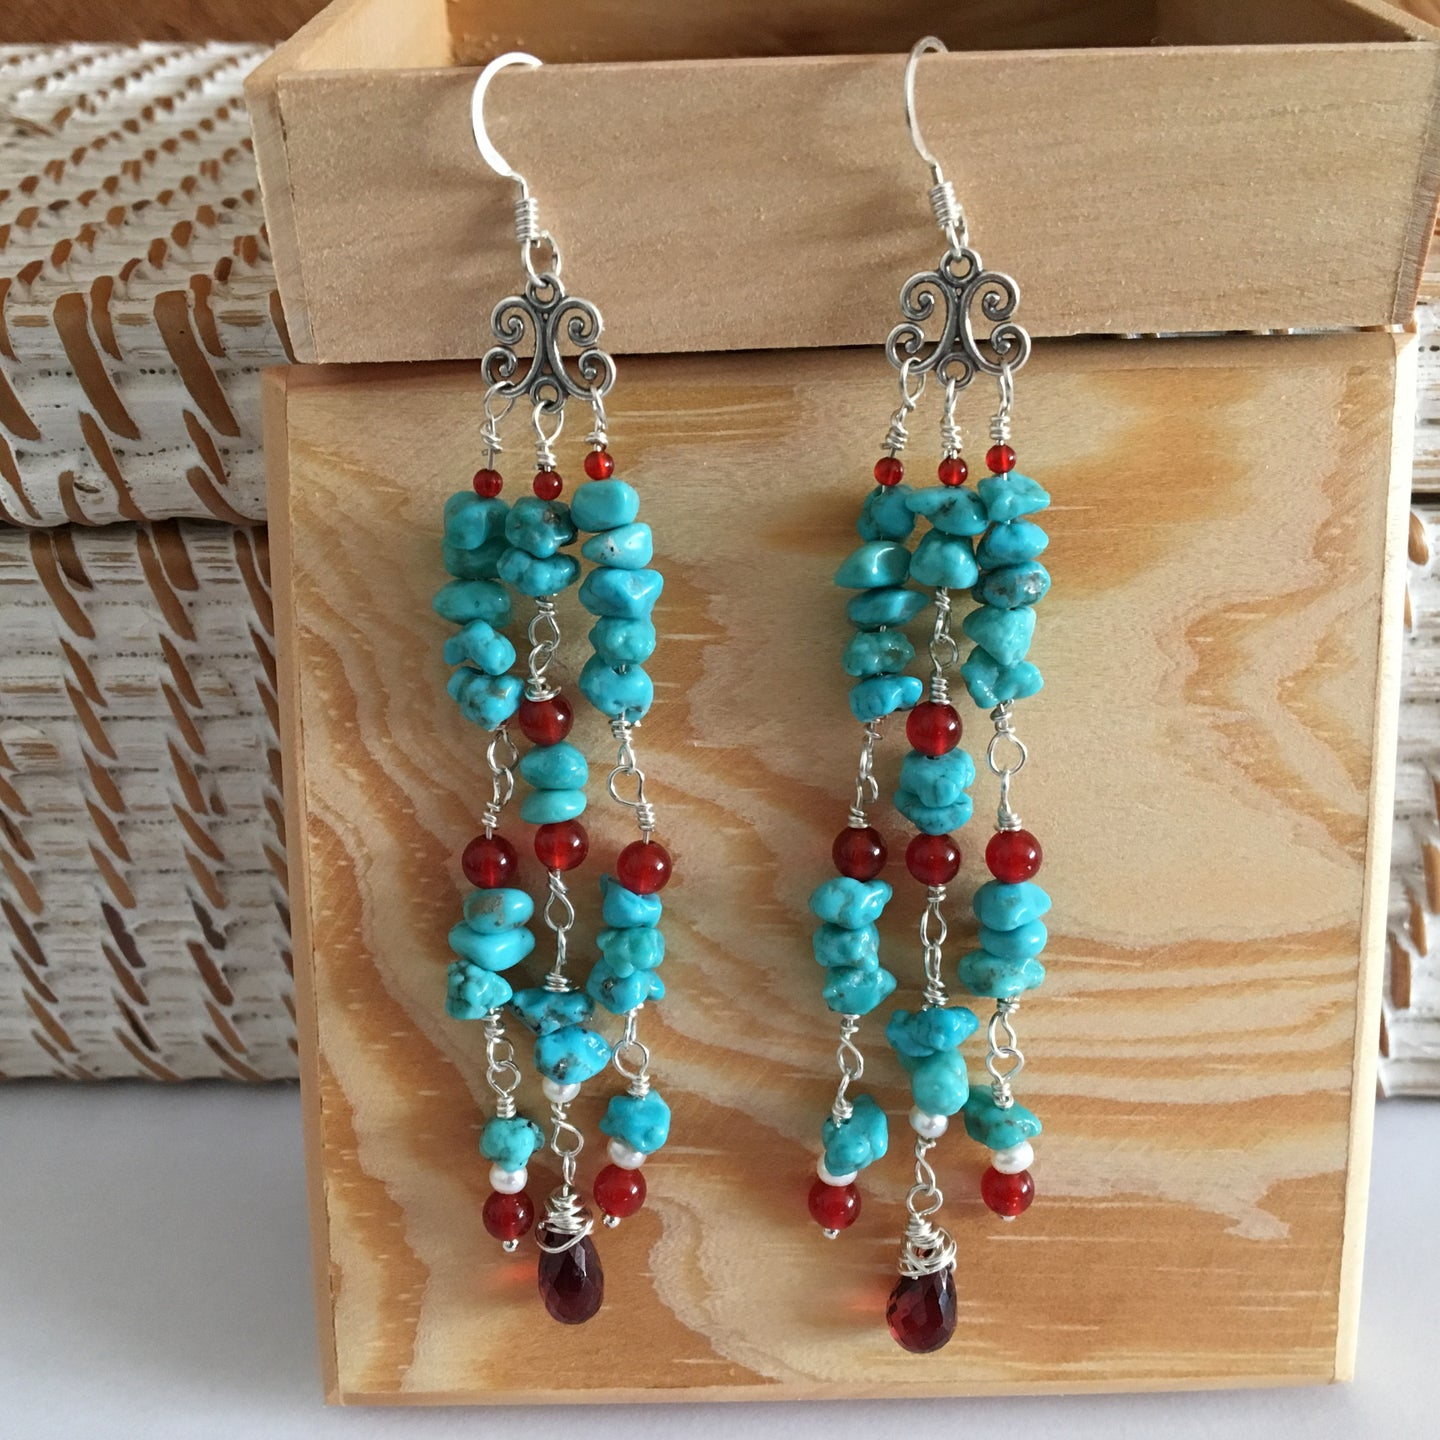 Custom Turquoise, Carnelian, Garnet and Pearl Earrings